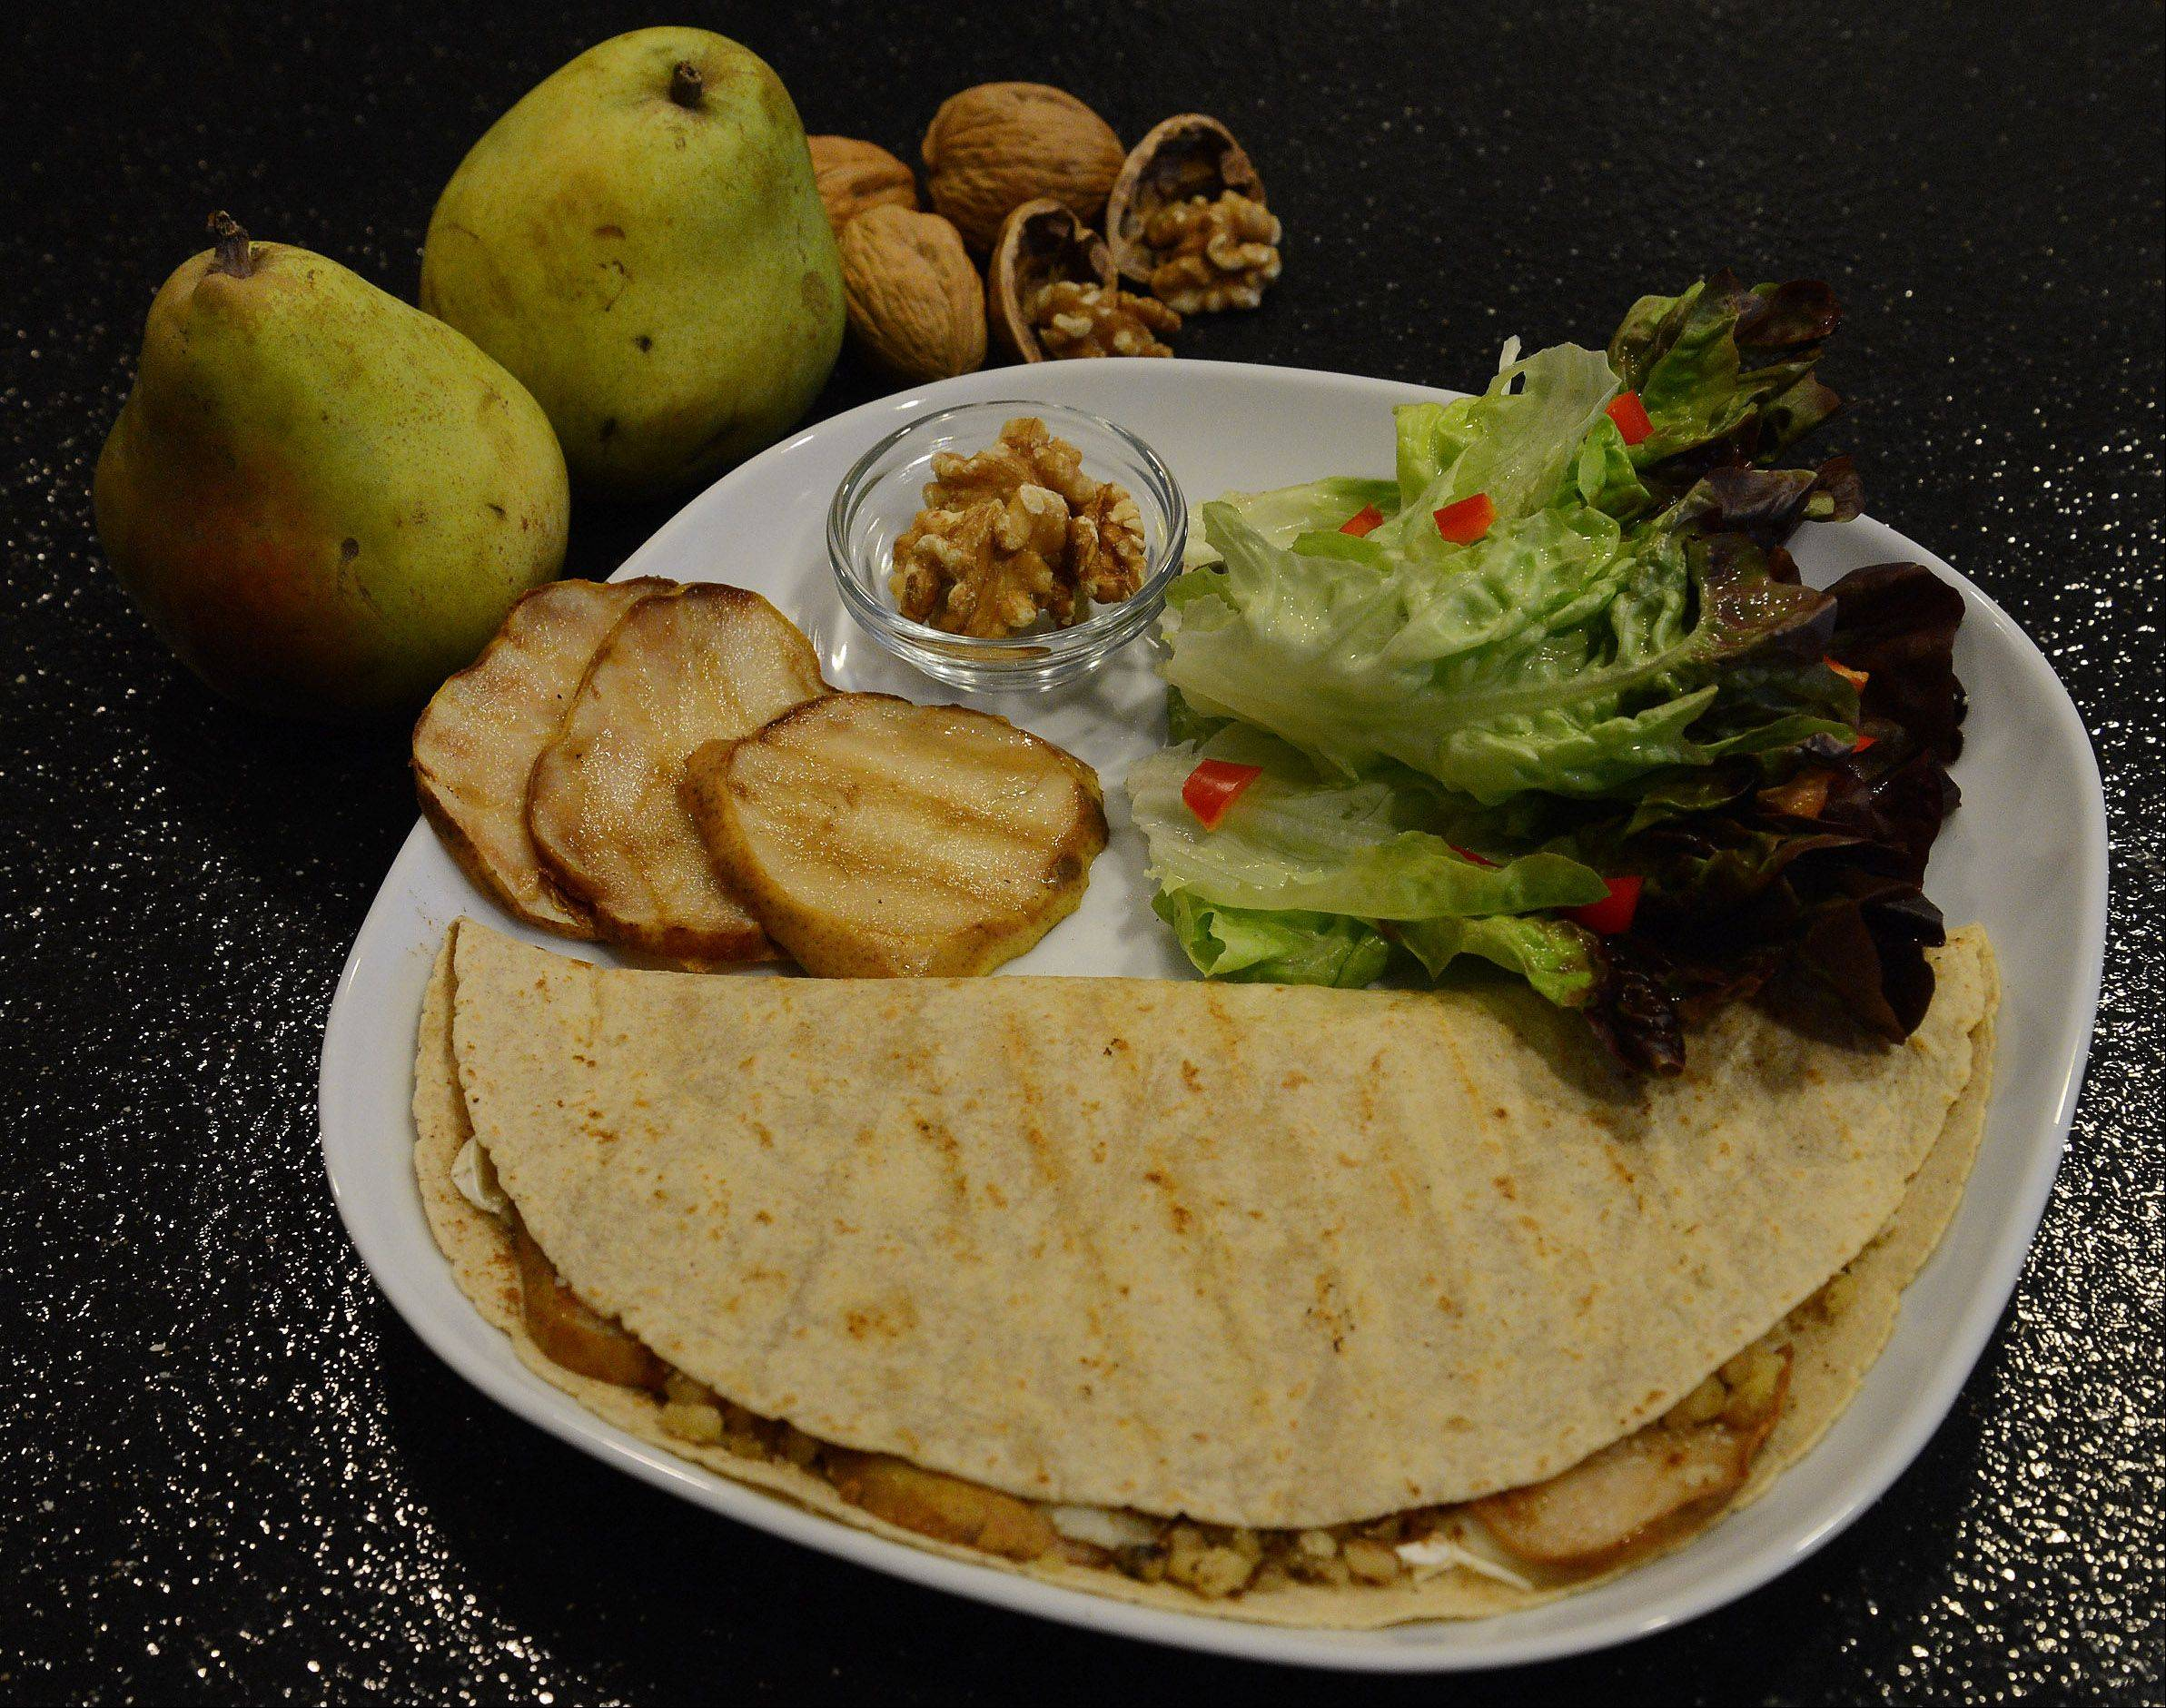 Grilled pears partner with walnuts and brie for a quesadilla that can be an appetizer or entree.